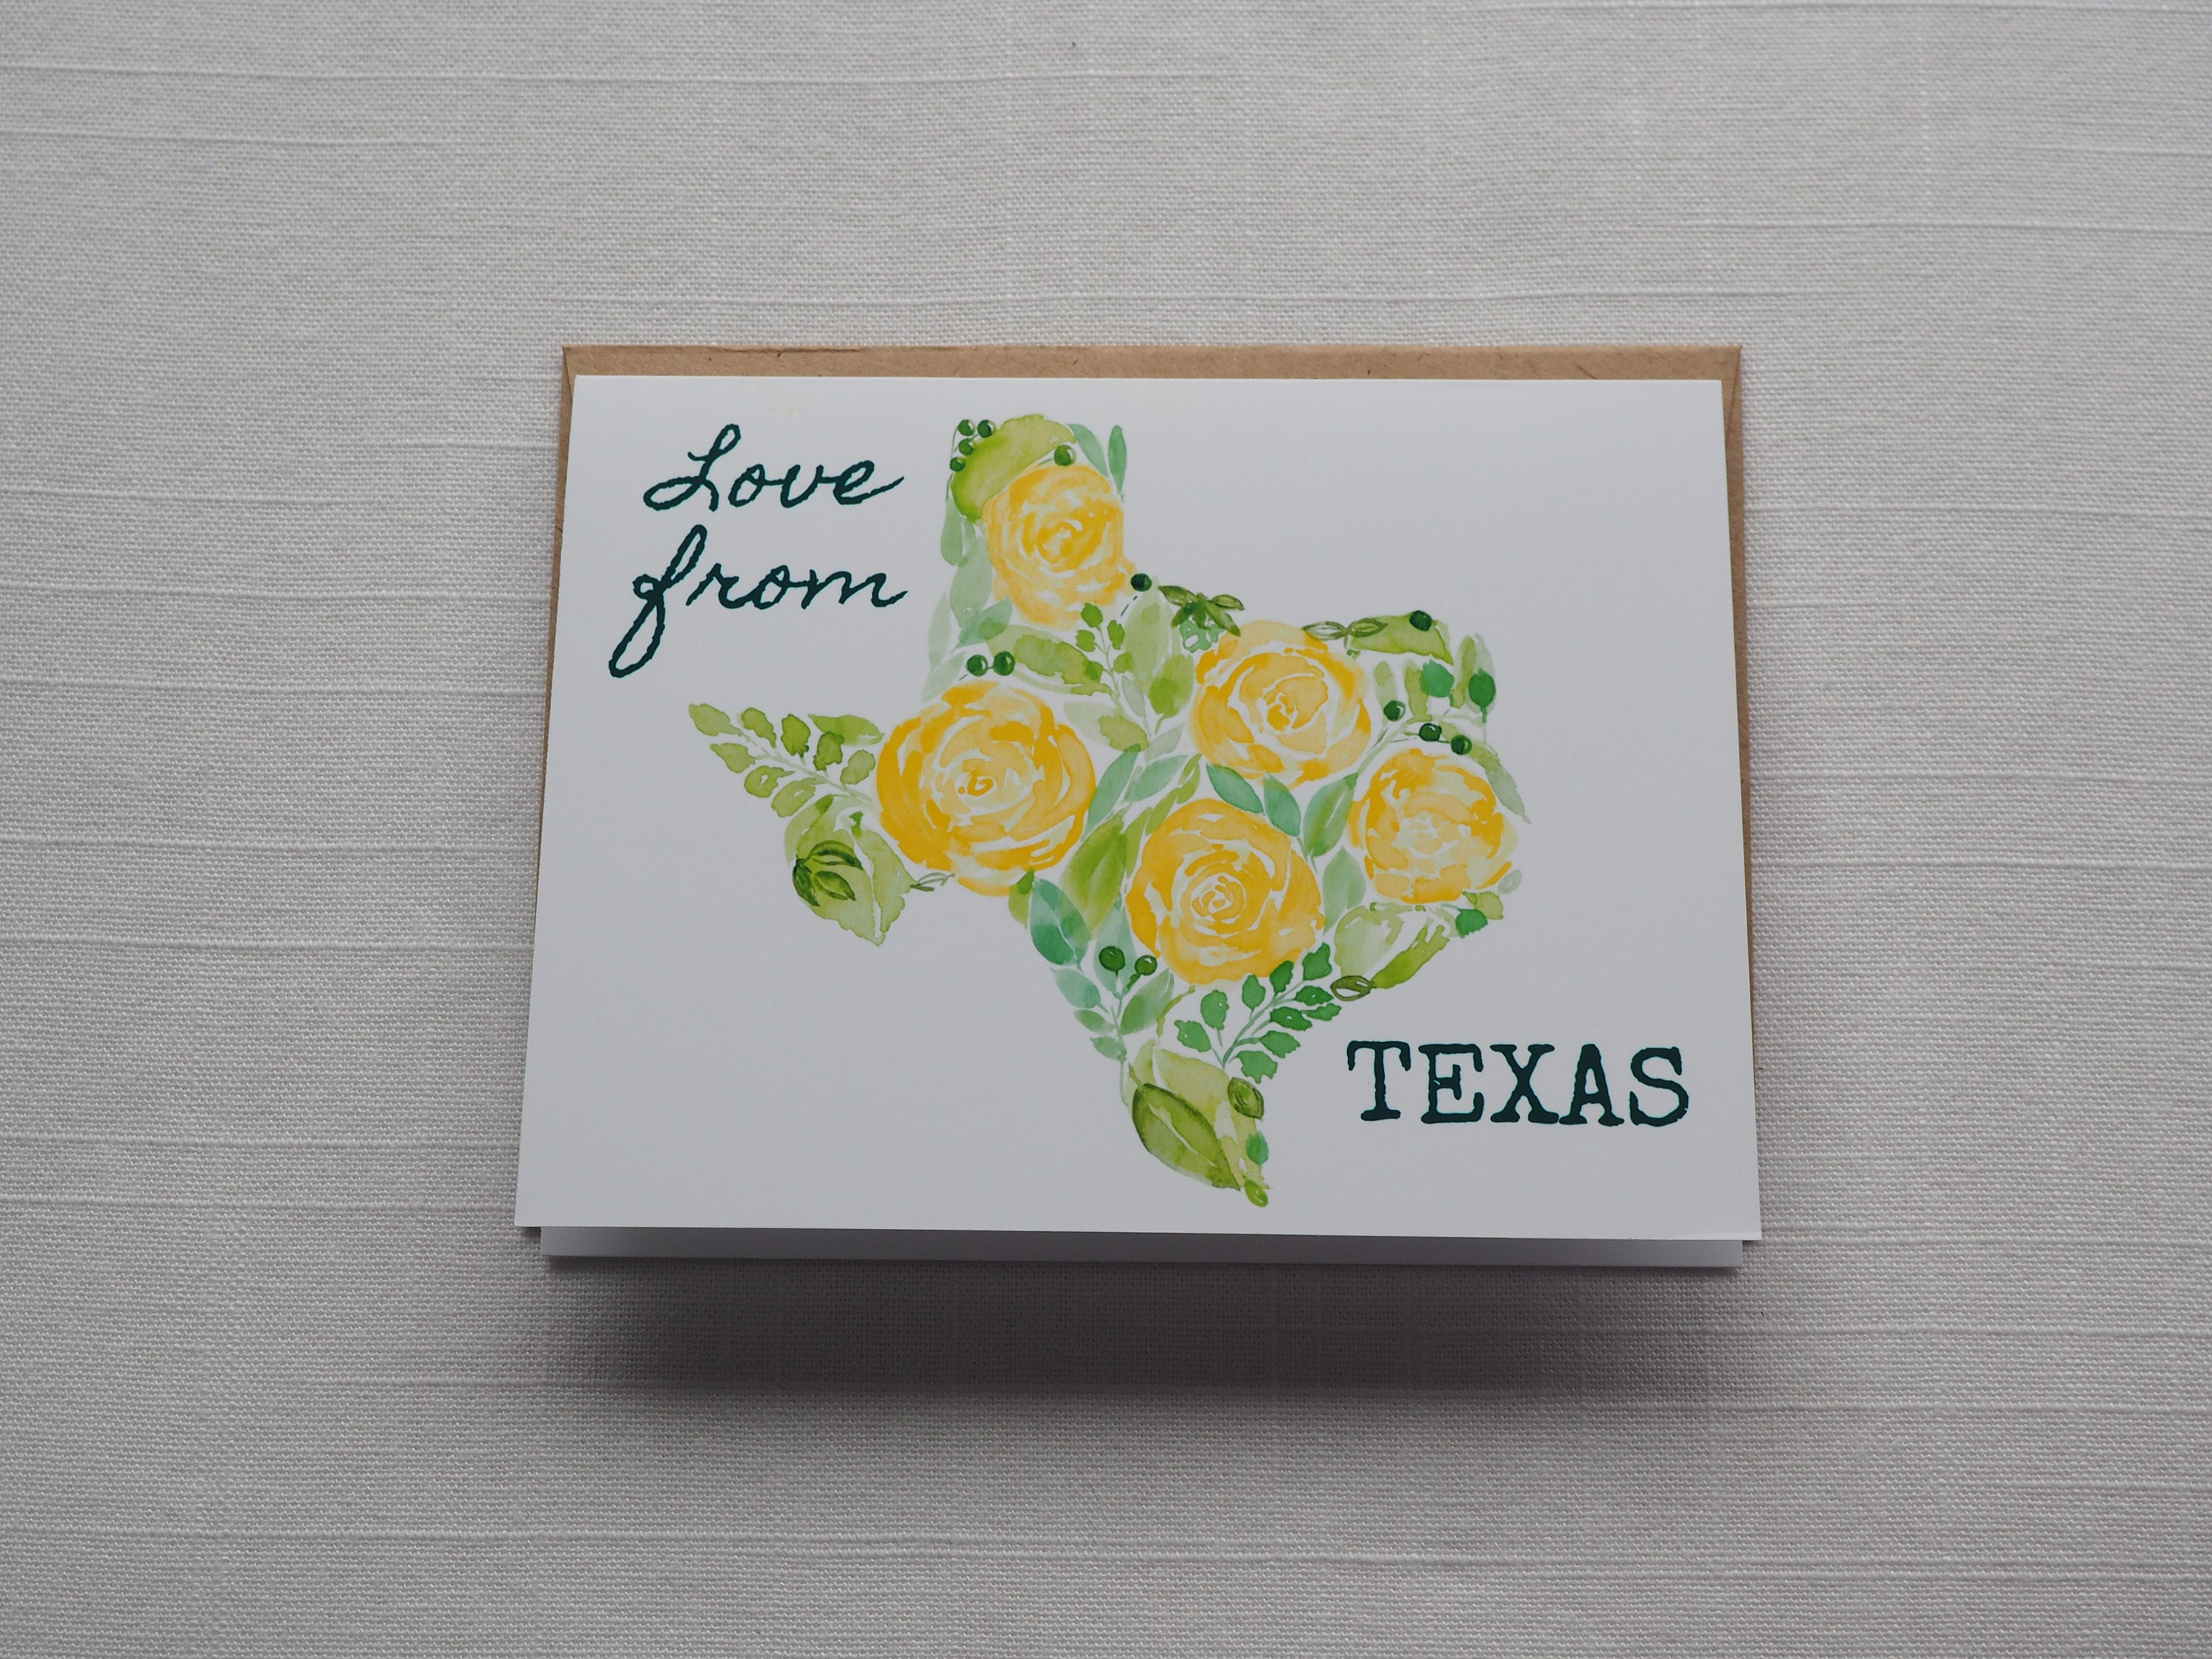 Texas Note Card Texas State Outline Art Card Handmade Etsy